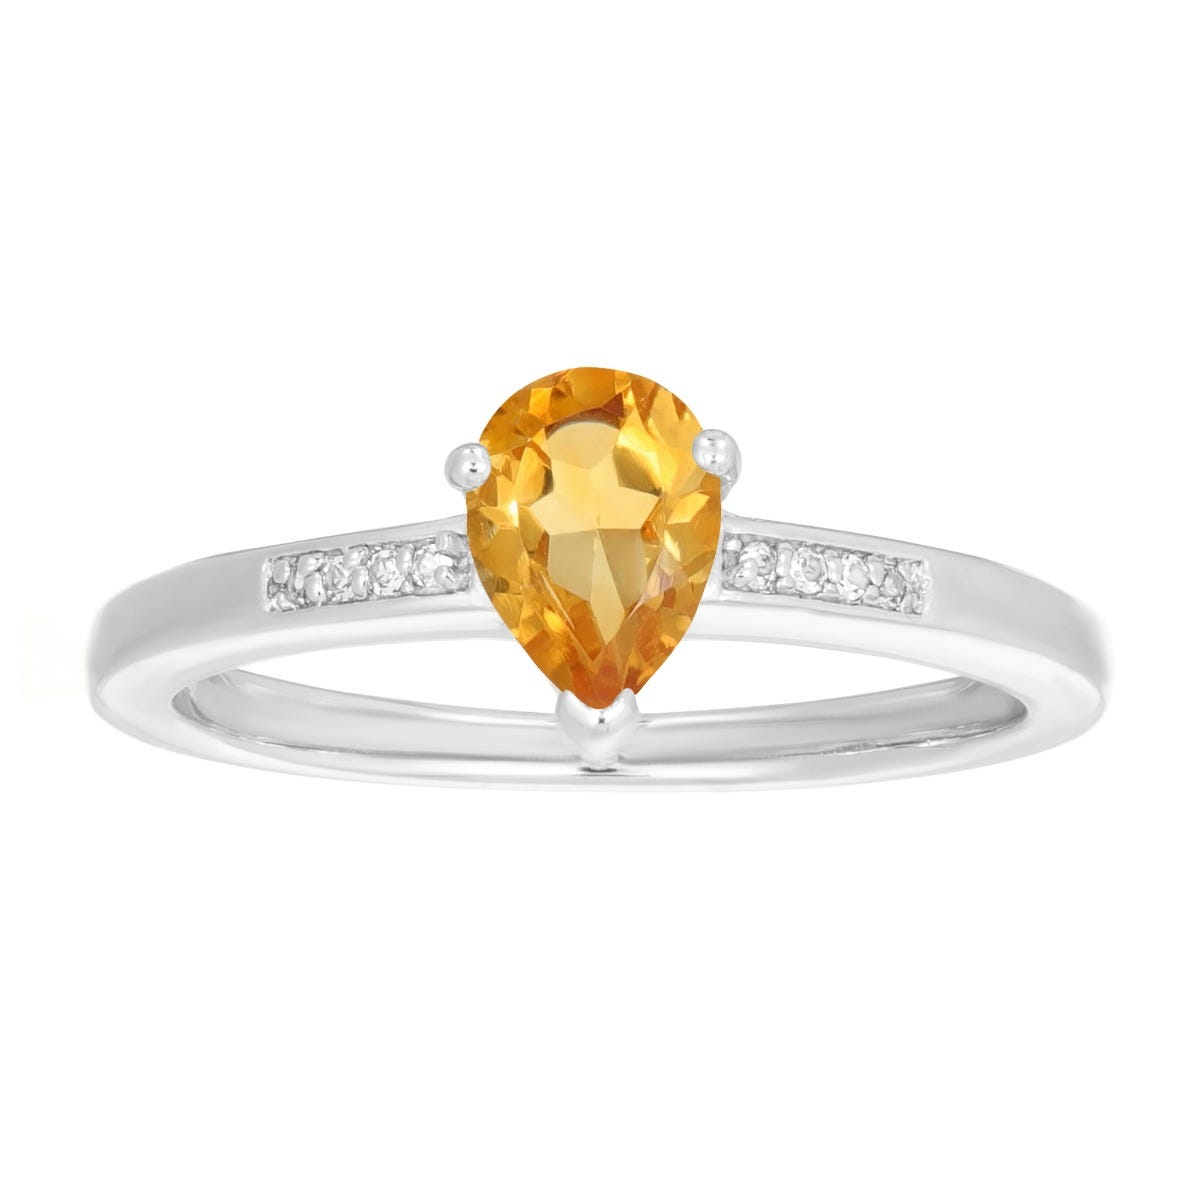 Pear Shaped Citrine & White Topaz Ring in Sterling Silver